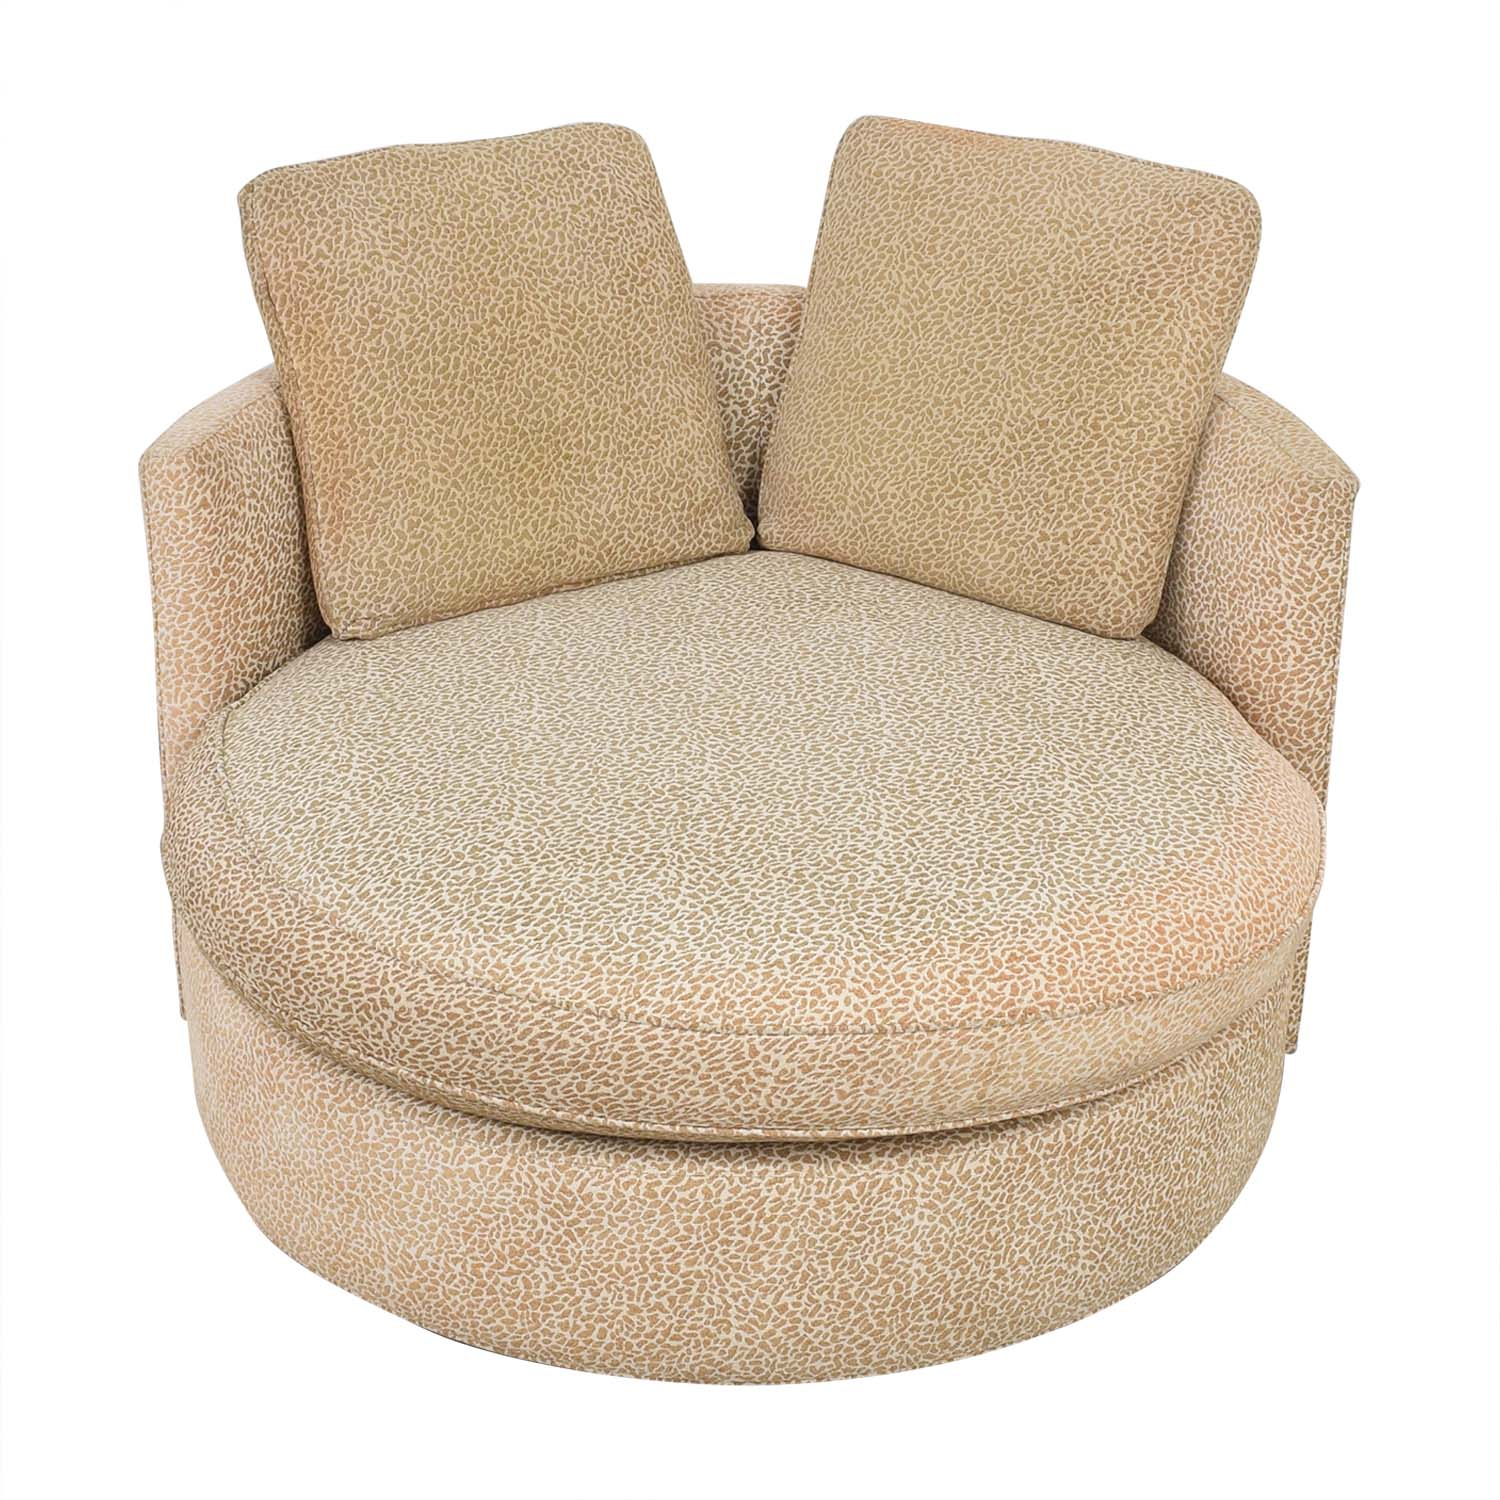 Macy's Macy's Circle Swivel Chair